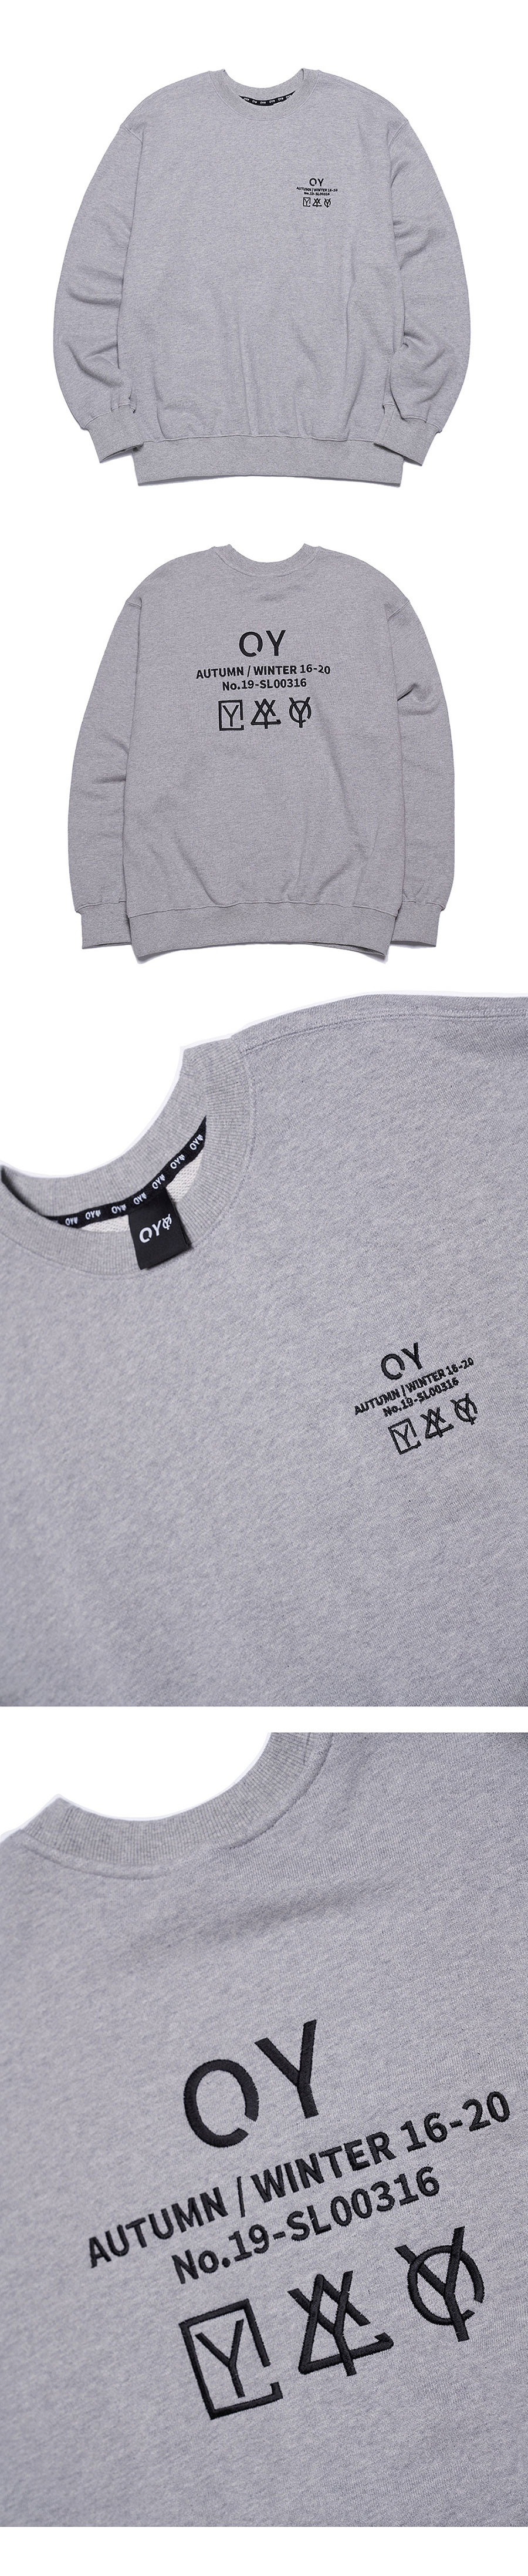 오와이(OY) TRIPLE LOGO MTM - GREY